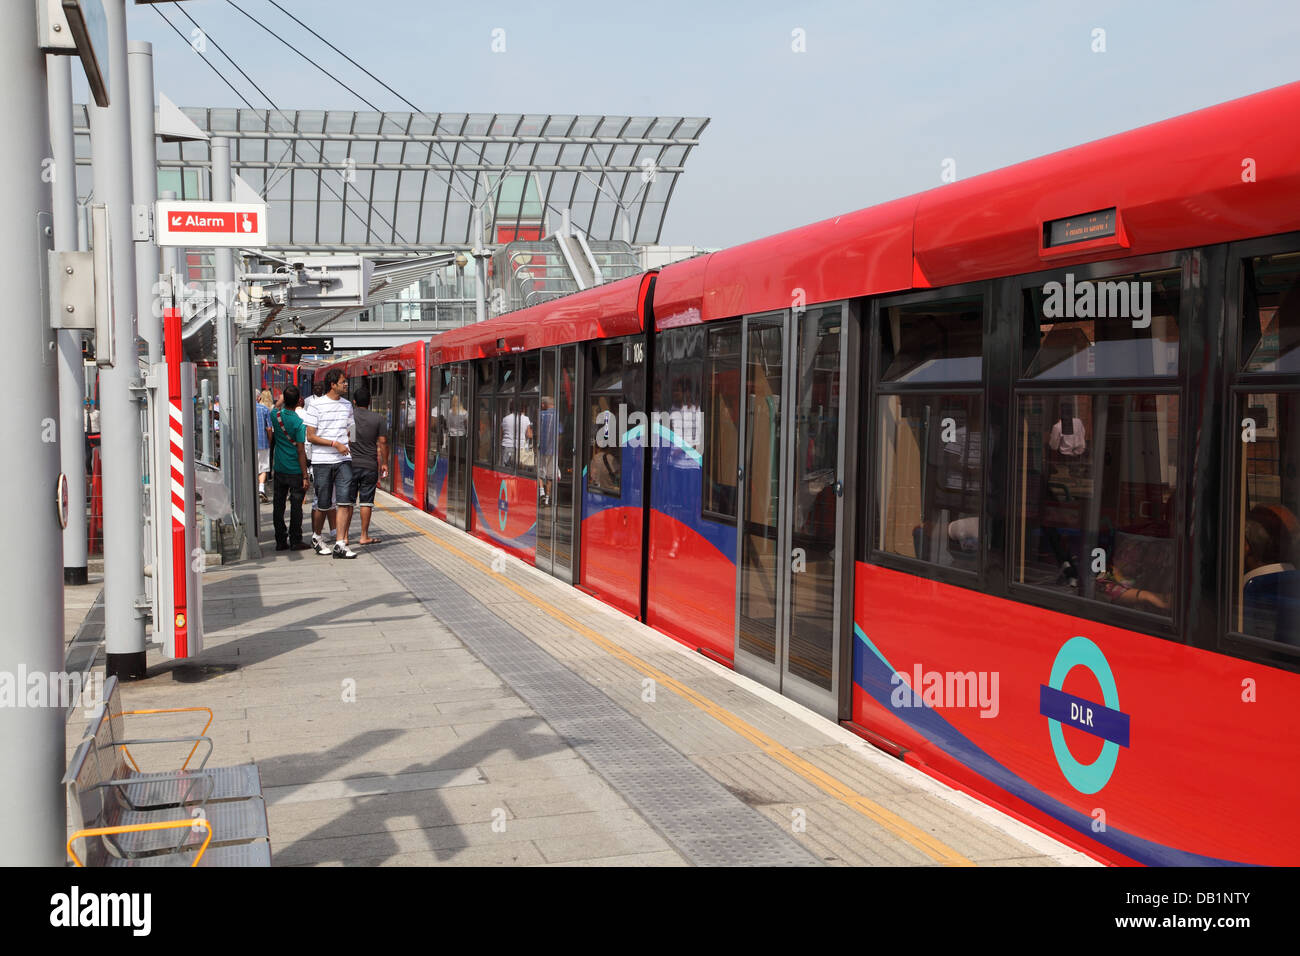 A London Docklands Light Railway train arrives at Poplar Station - Stock Image